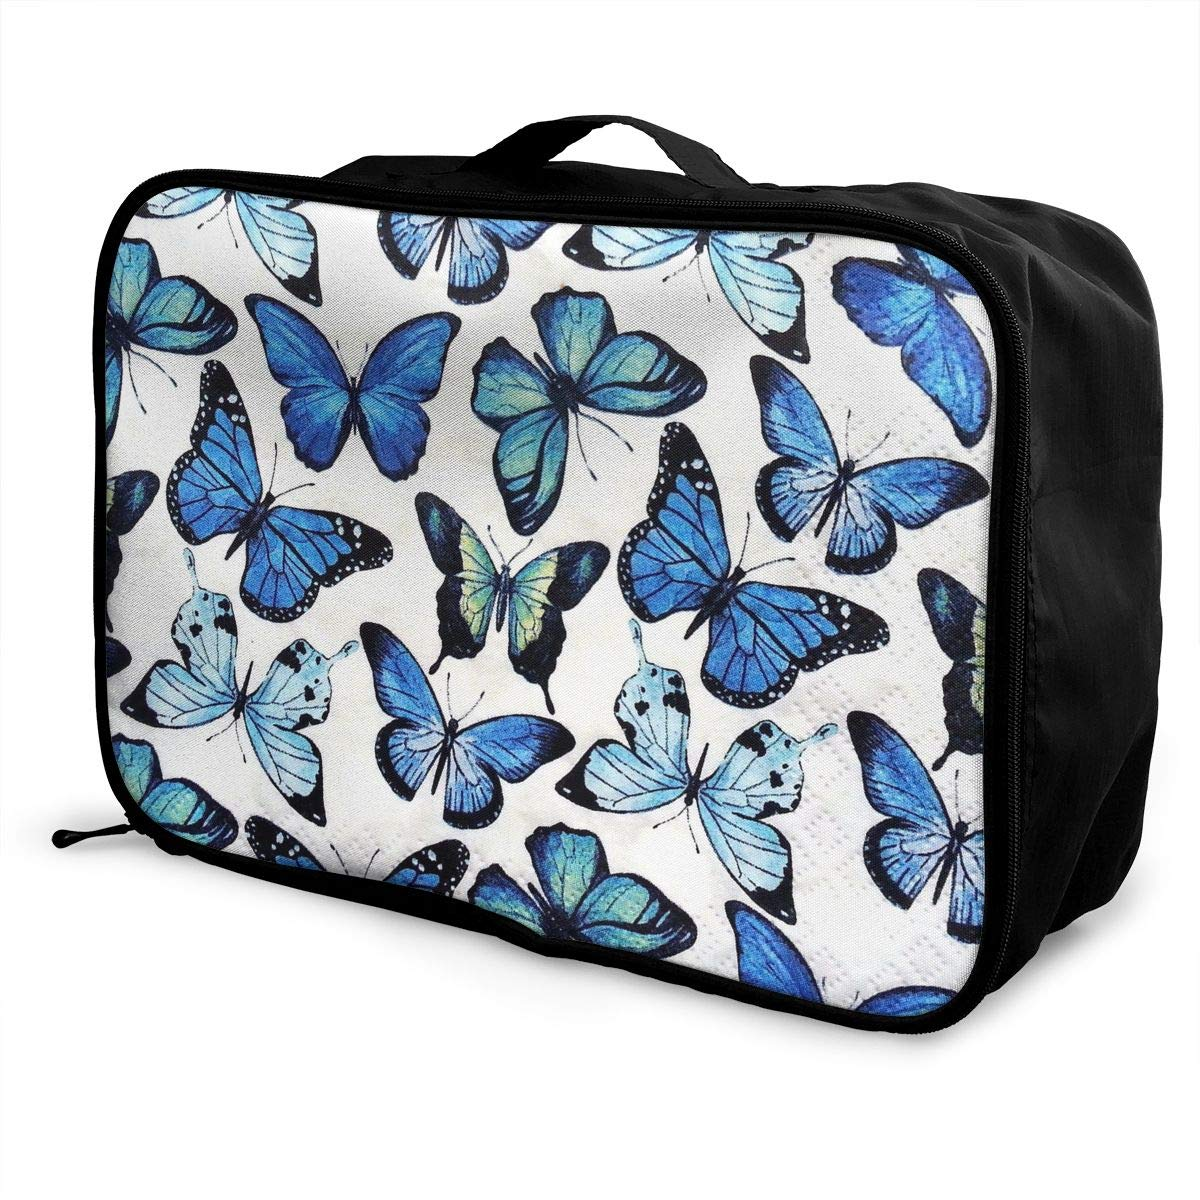 Travel Luggage Duffle Bag Lightweight Portable Handbag Blue Butterfly Large Capacity Waterproof Foldable Storage Tote